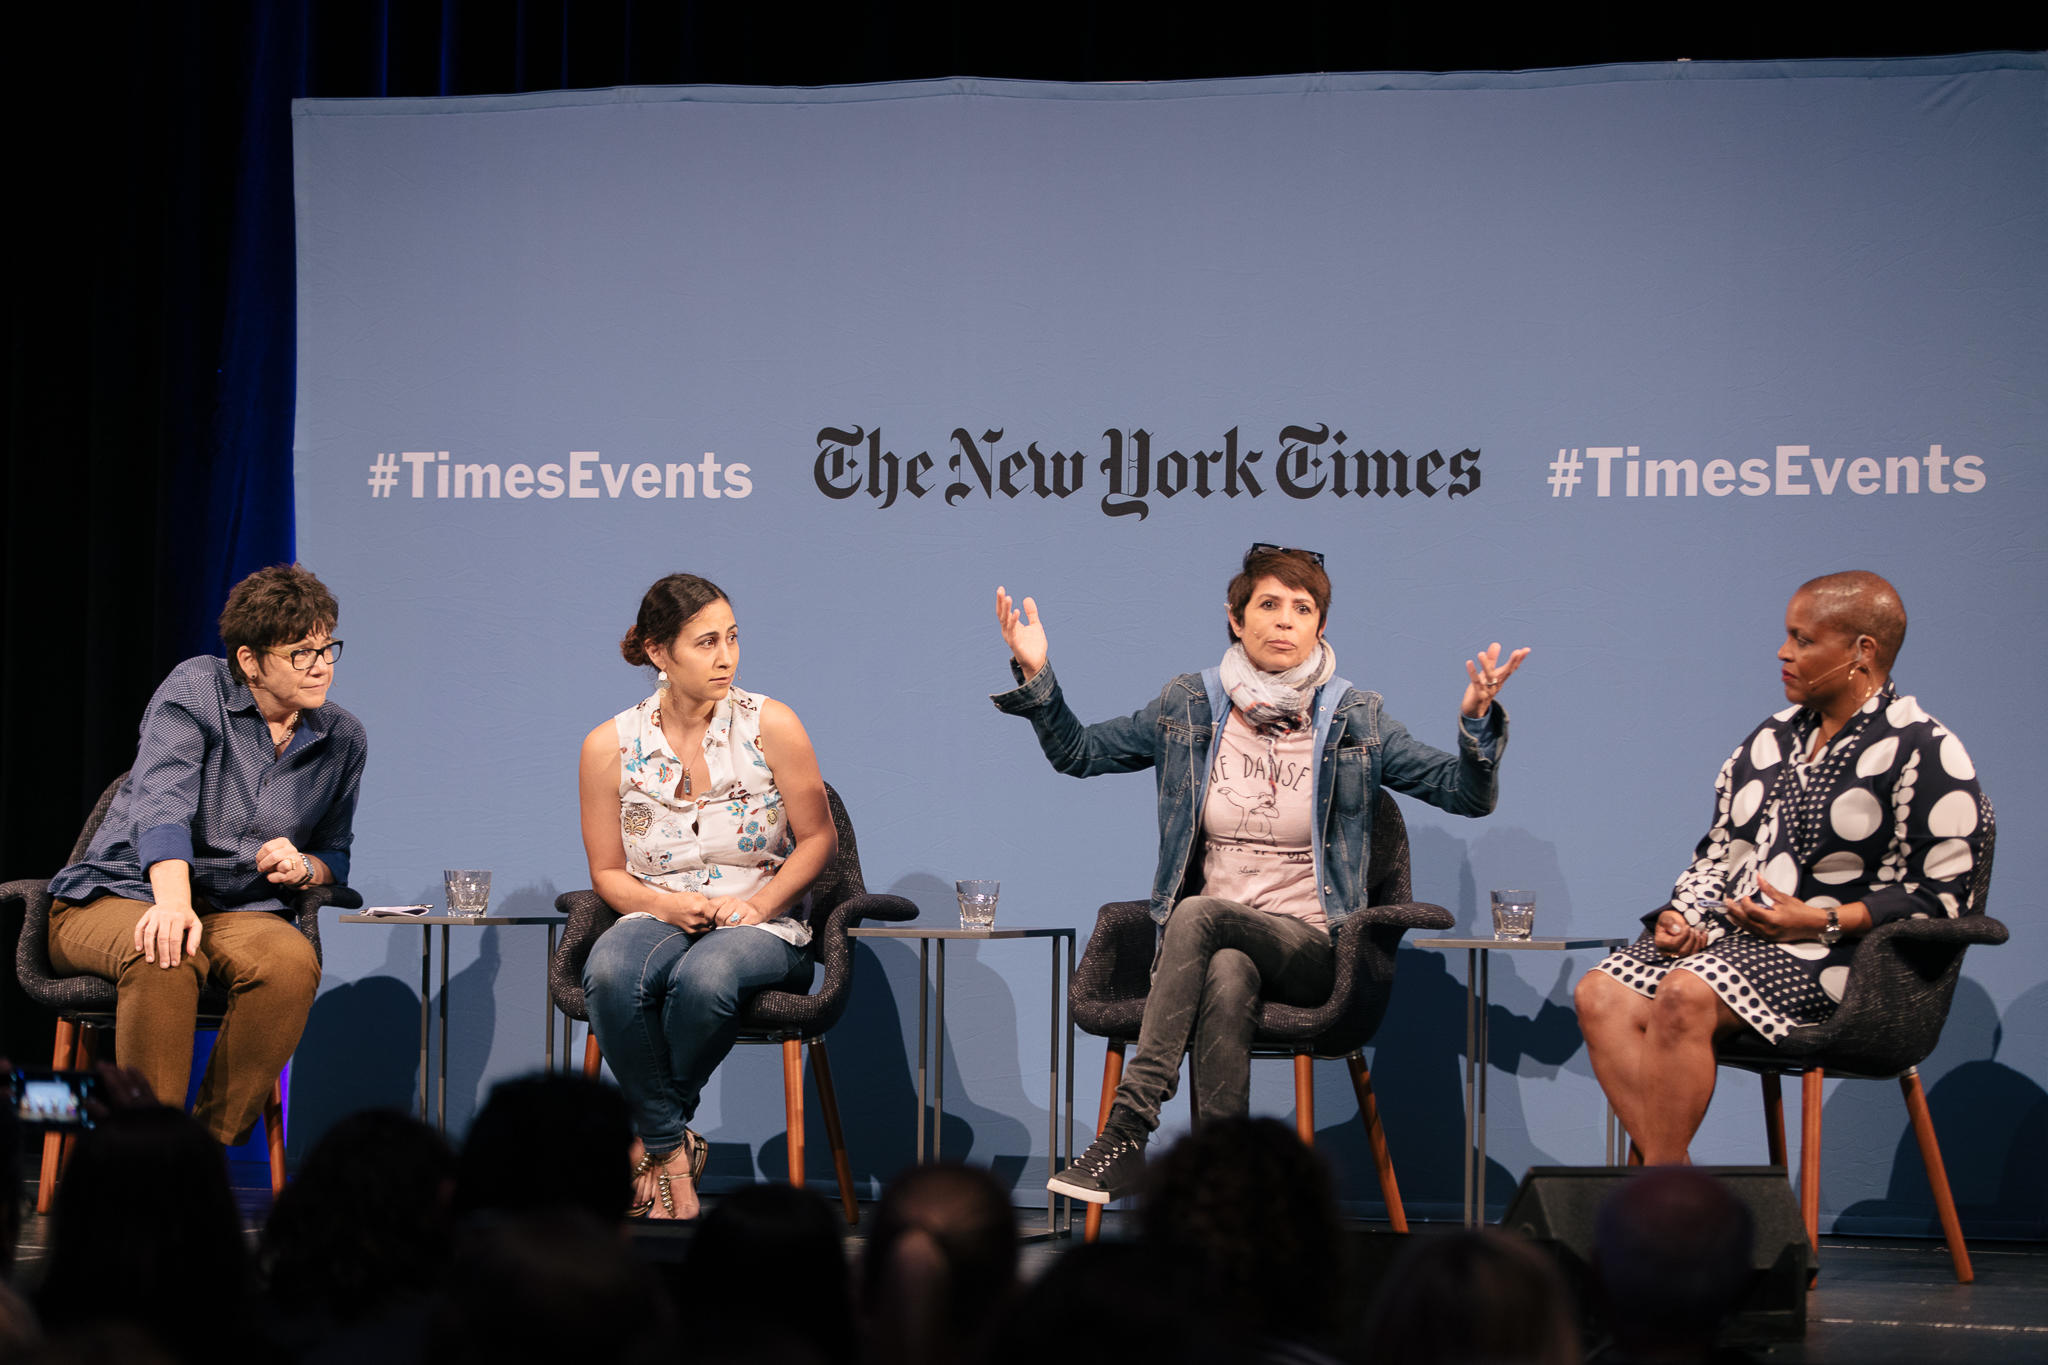 Photo courtesy of  The New York Times  and Peter Prato